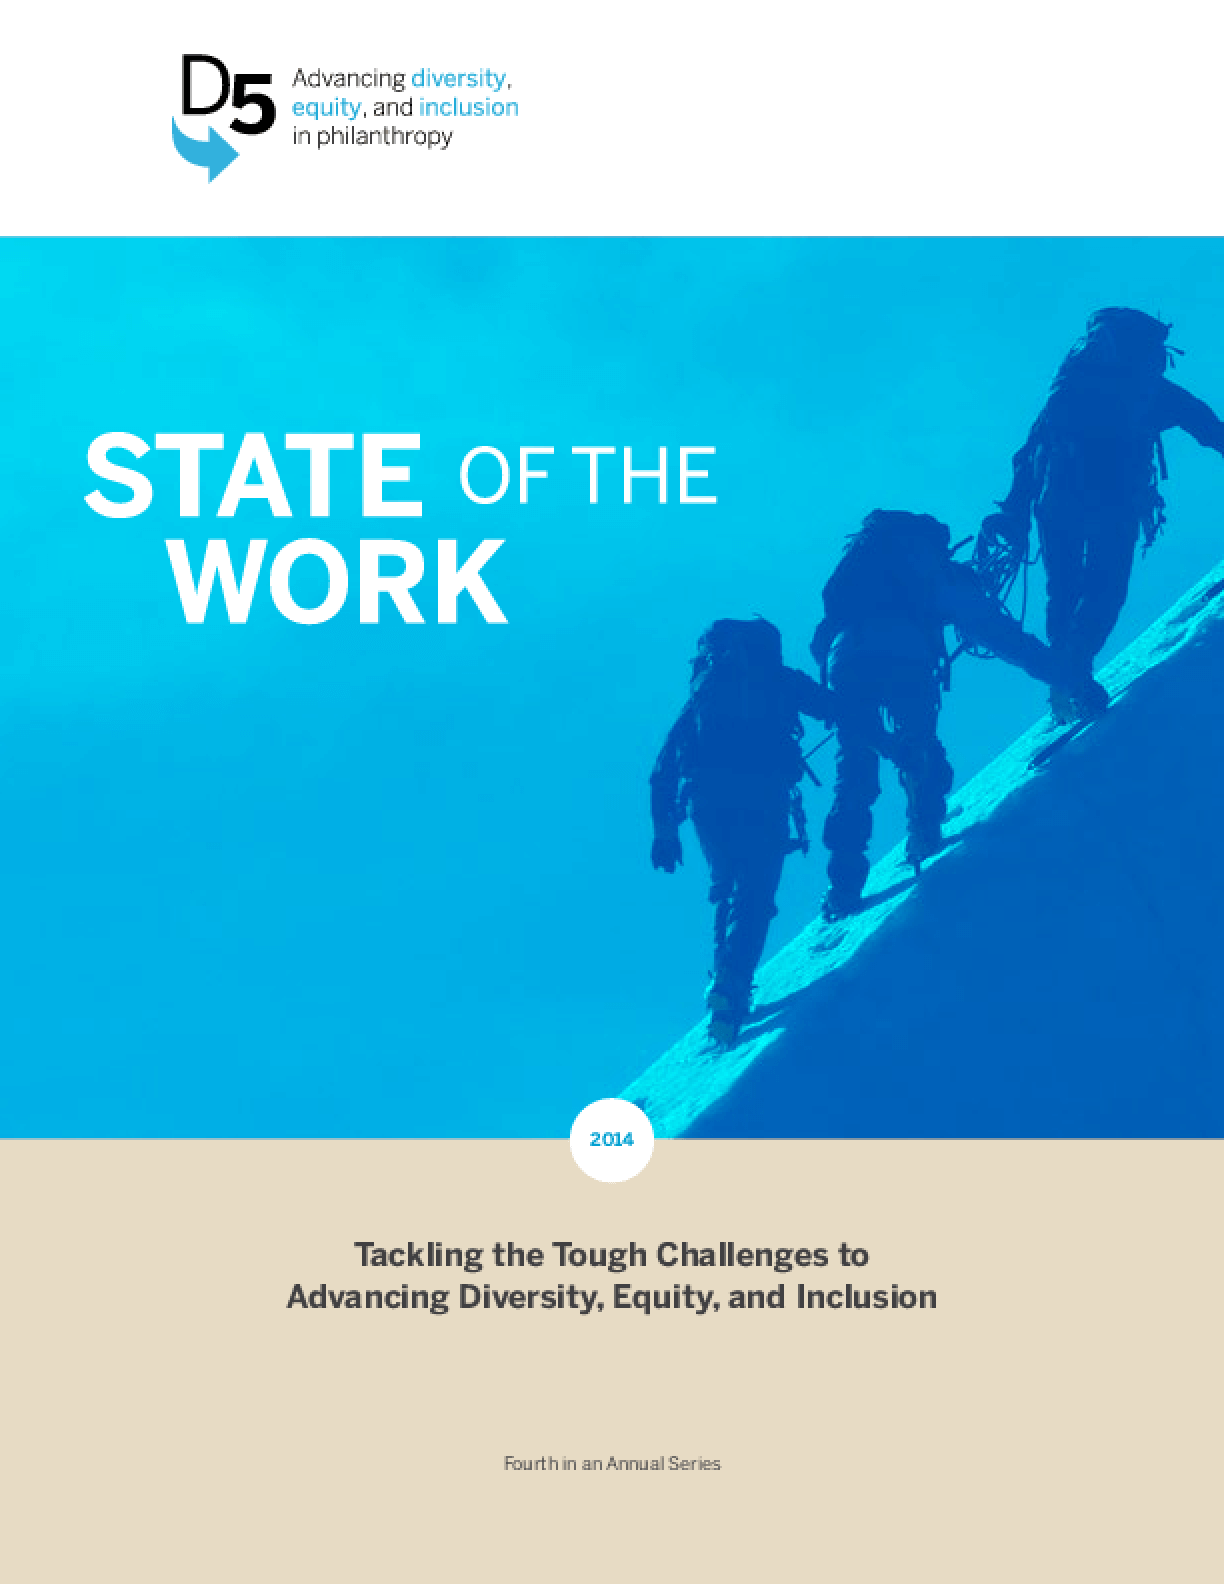 State of the Work 2014: Tackling the Tough Challenges to Advancing Diversity, Equity, and Inclusion